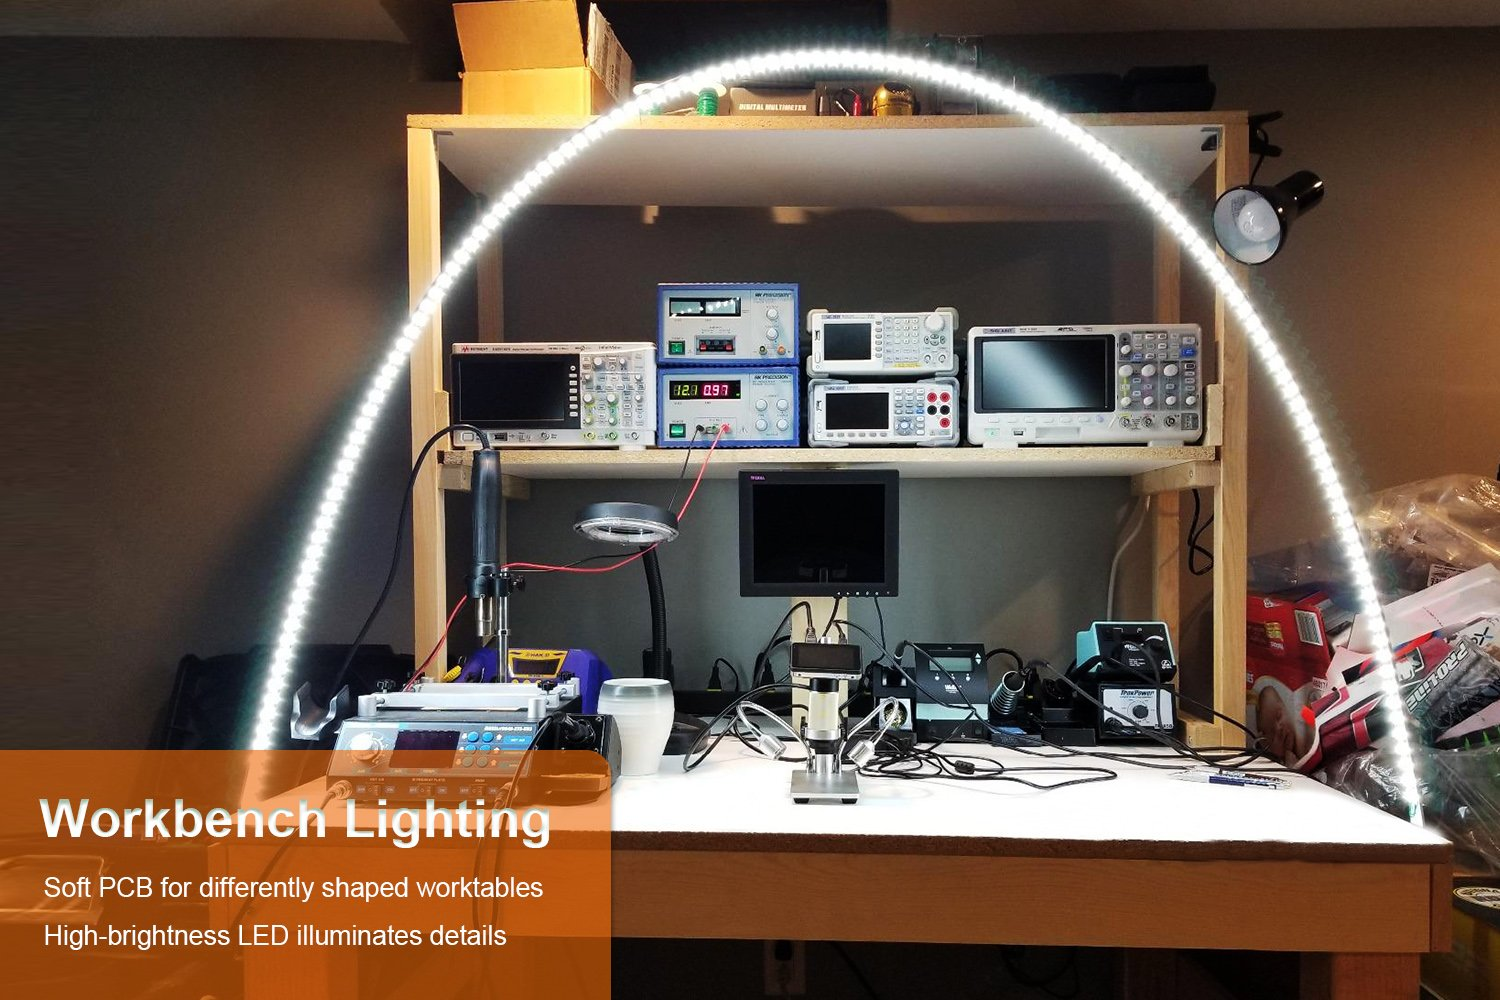 Led Workbench Light ViLSOM 4M/13Ft Workbench Light Bar Lights for Work Bench with Dimmer and Power Supply Adaptor for Work Bench Display Case ... & Led Workbench Light ViLSOM 4M/13Ft Workbench Light Bar Lights for ...